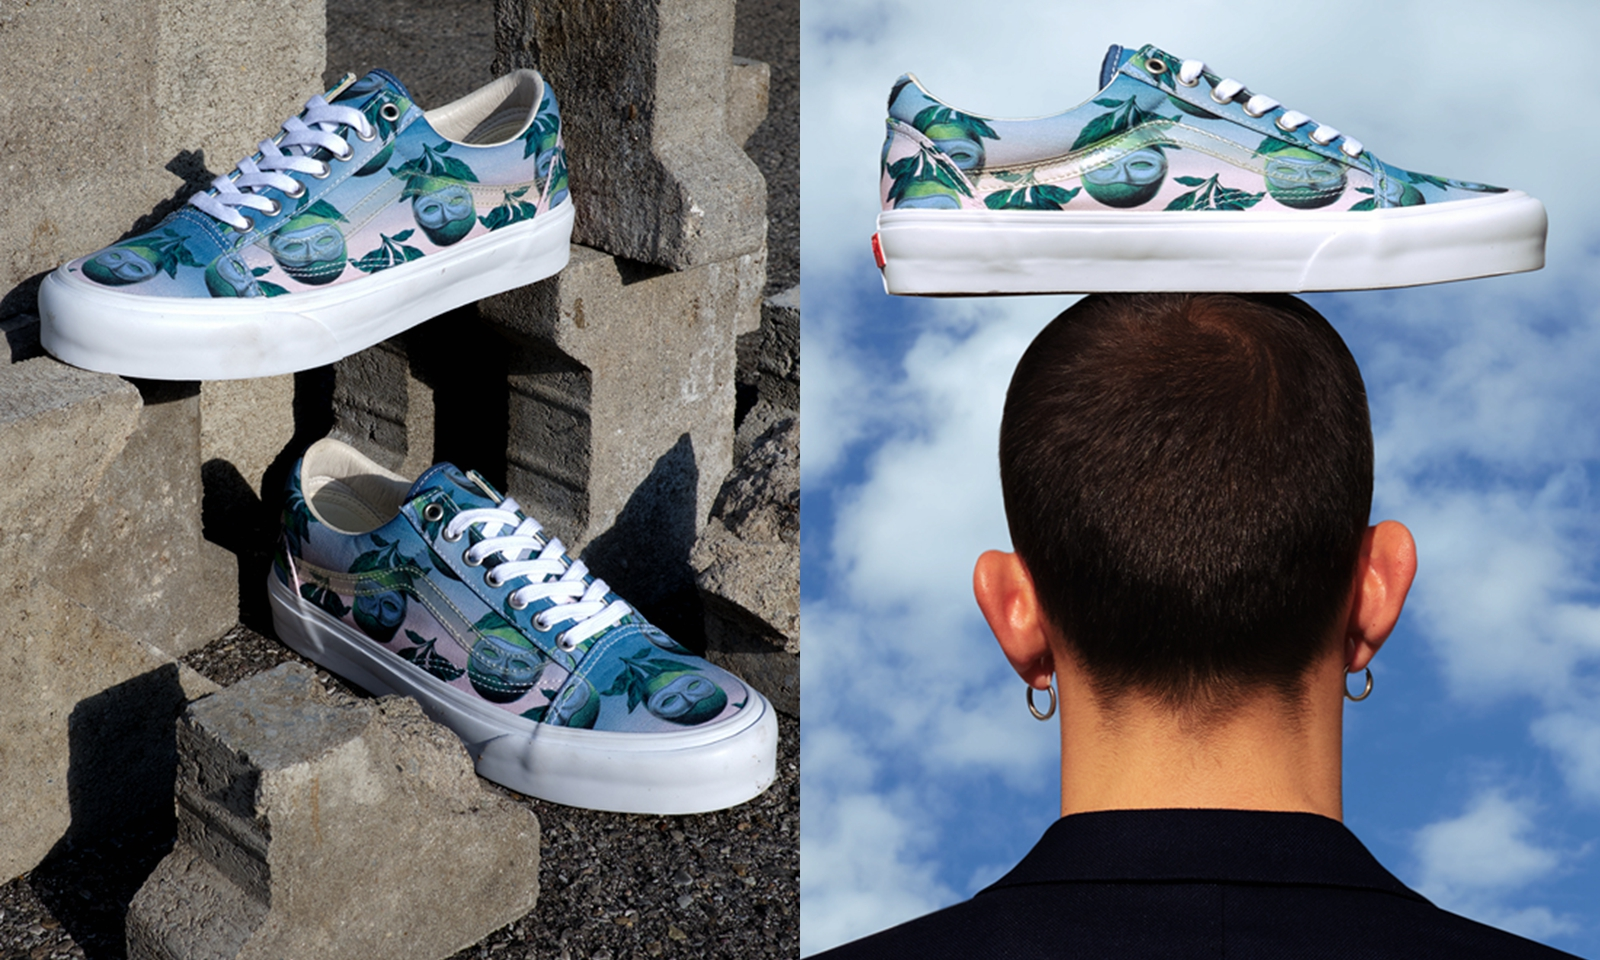 OPENING CEREMONY x The Magritte Foundation x Vans 三方联名公开